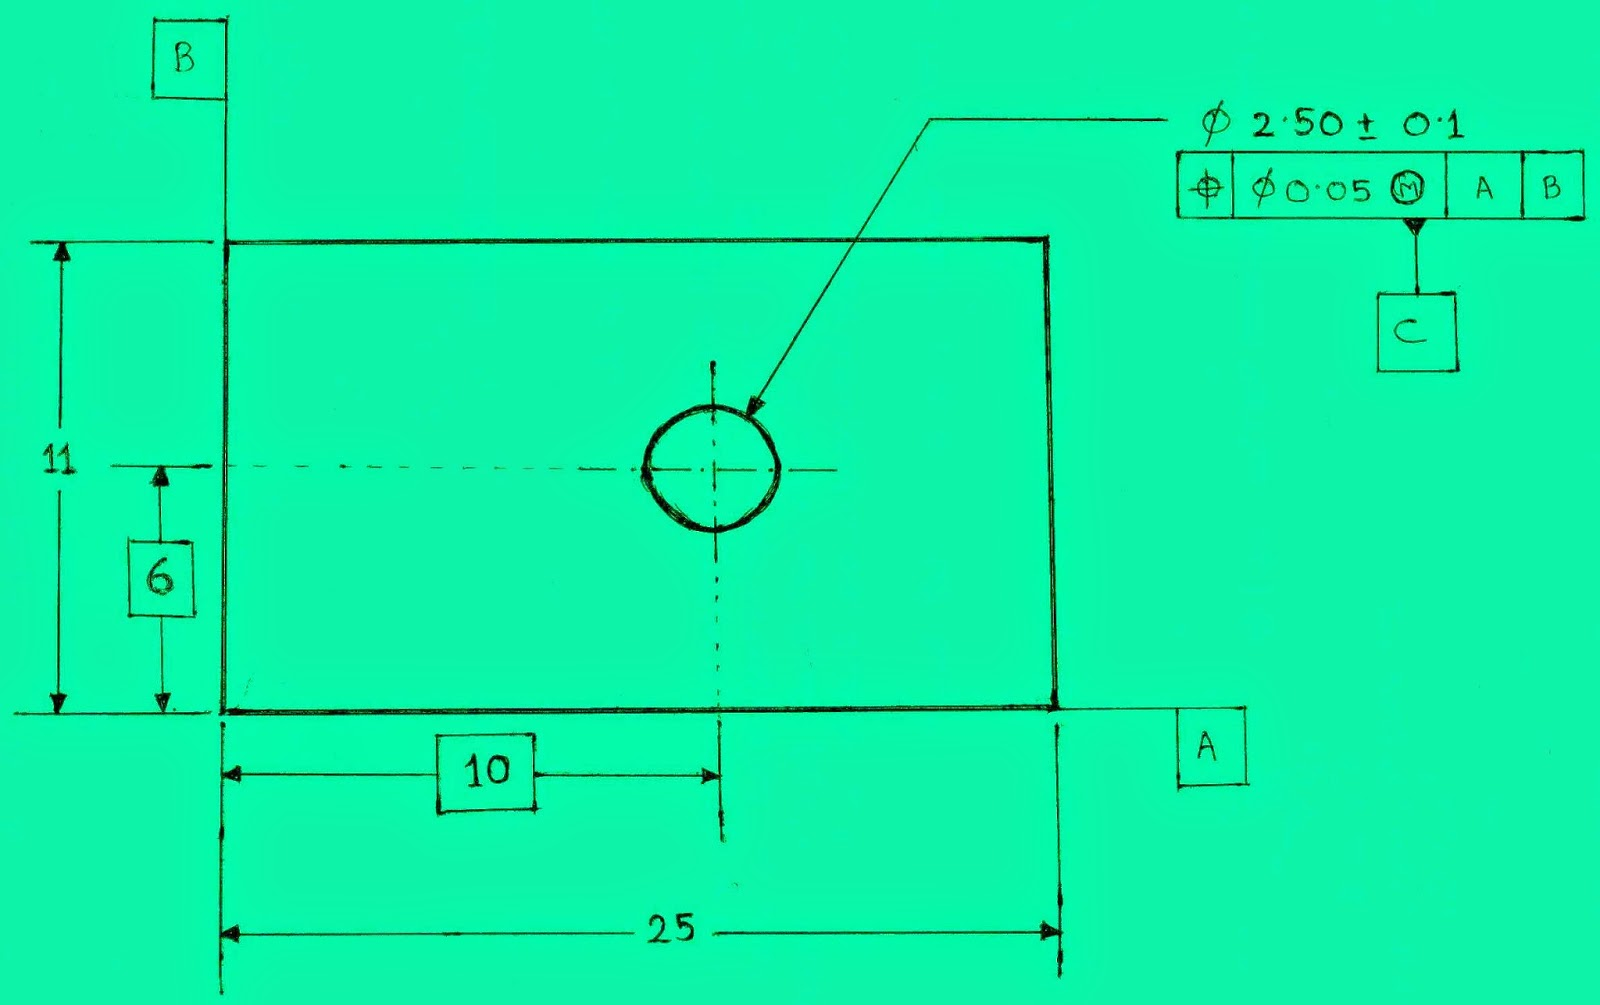 Geometric dimensioning and tolerancing gdt times of application of gdt for a sample drawing buycottarizona